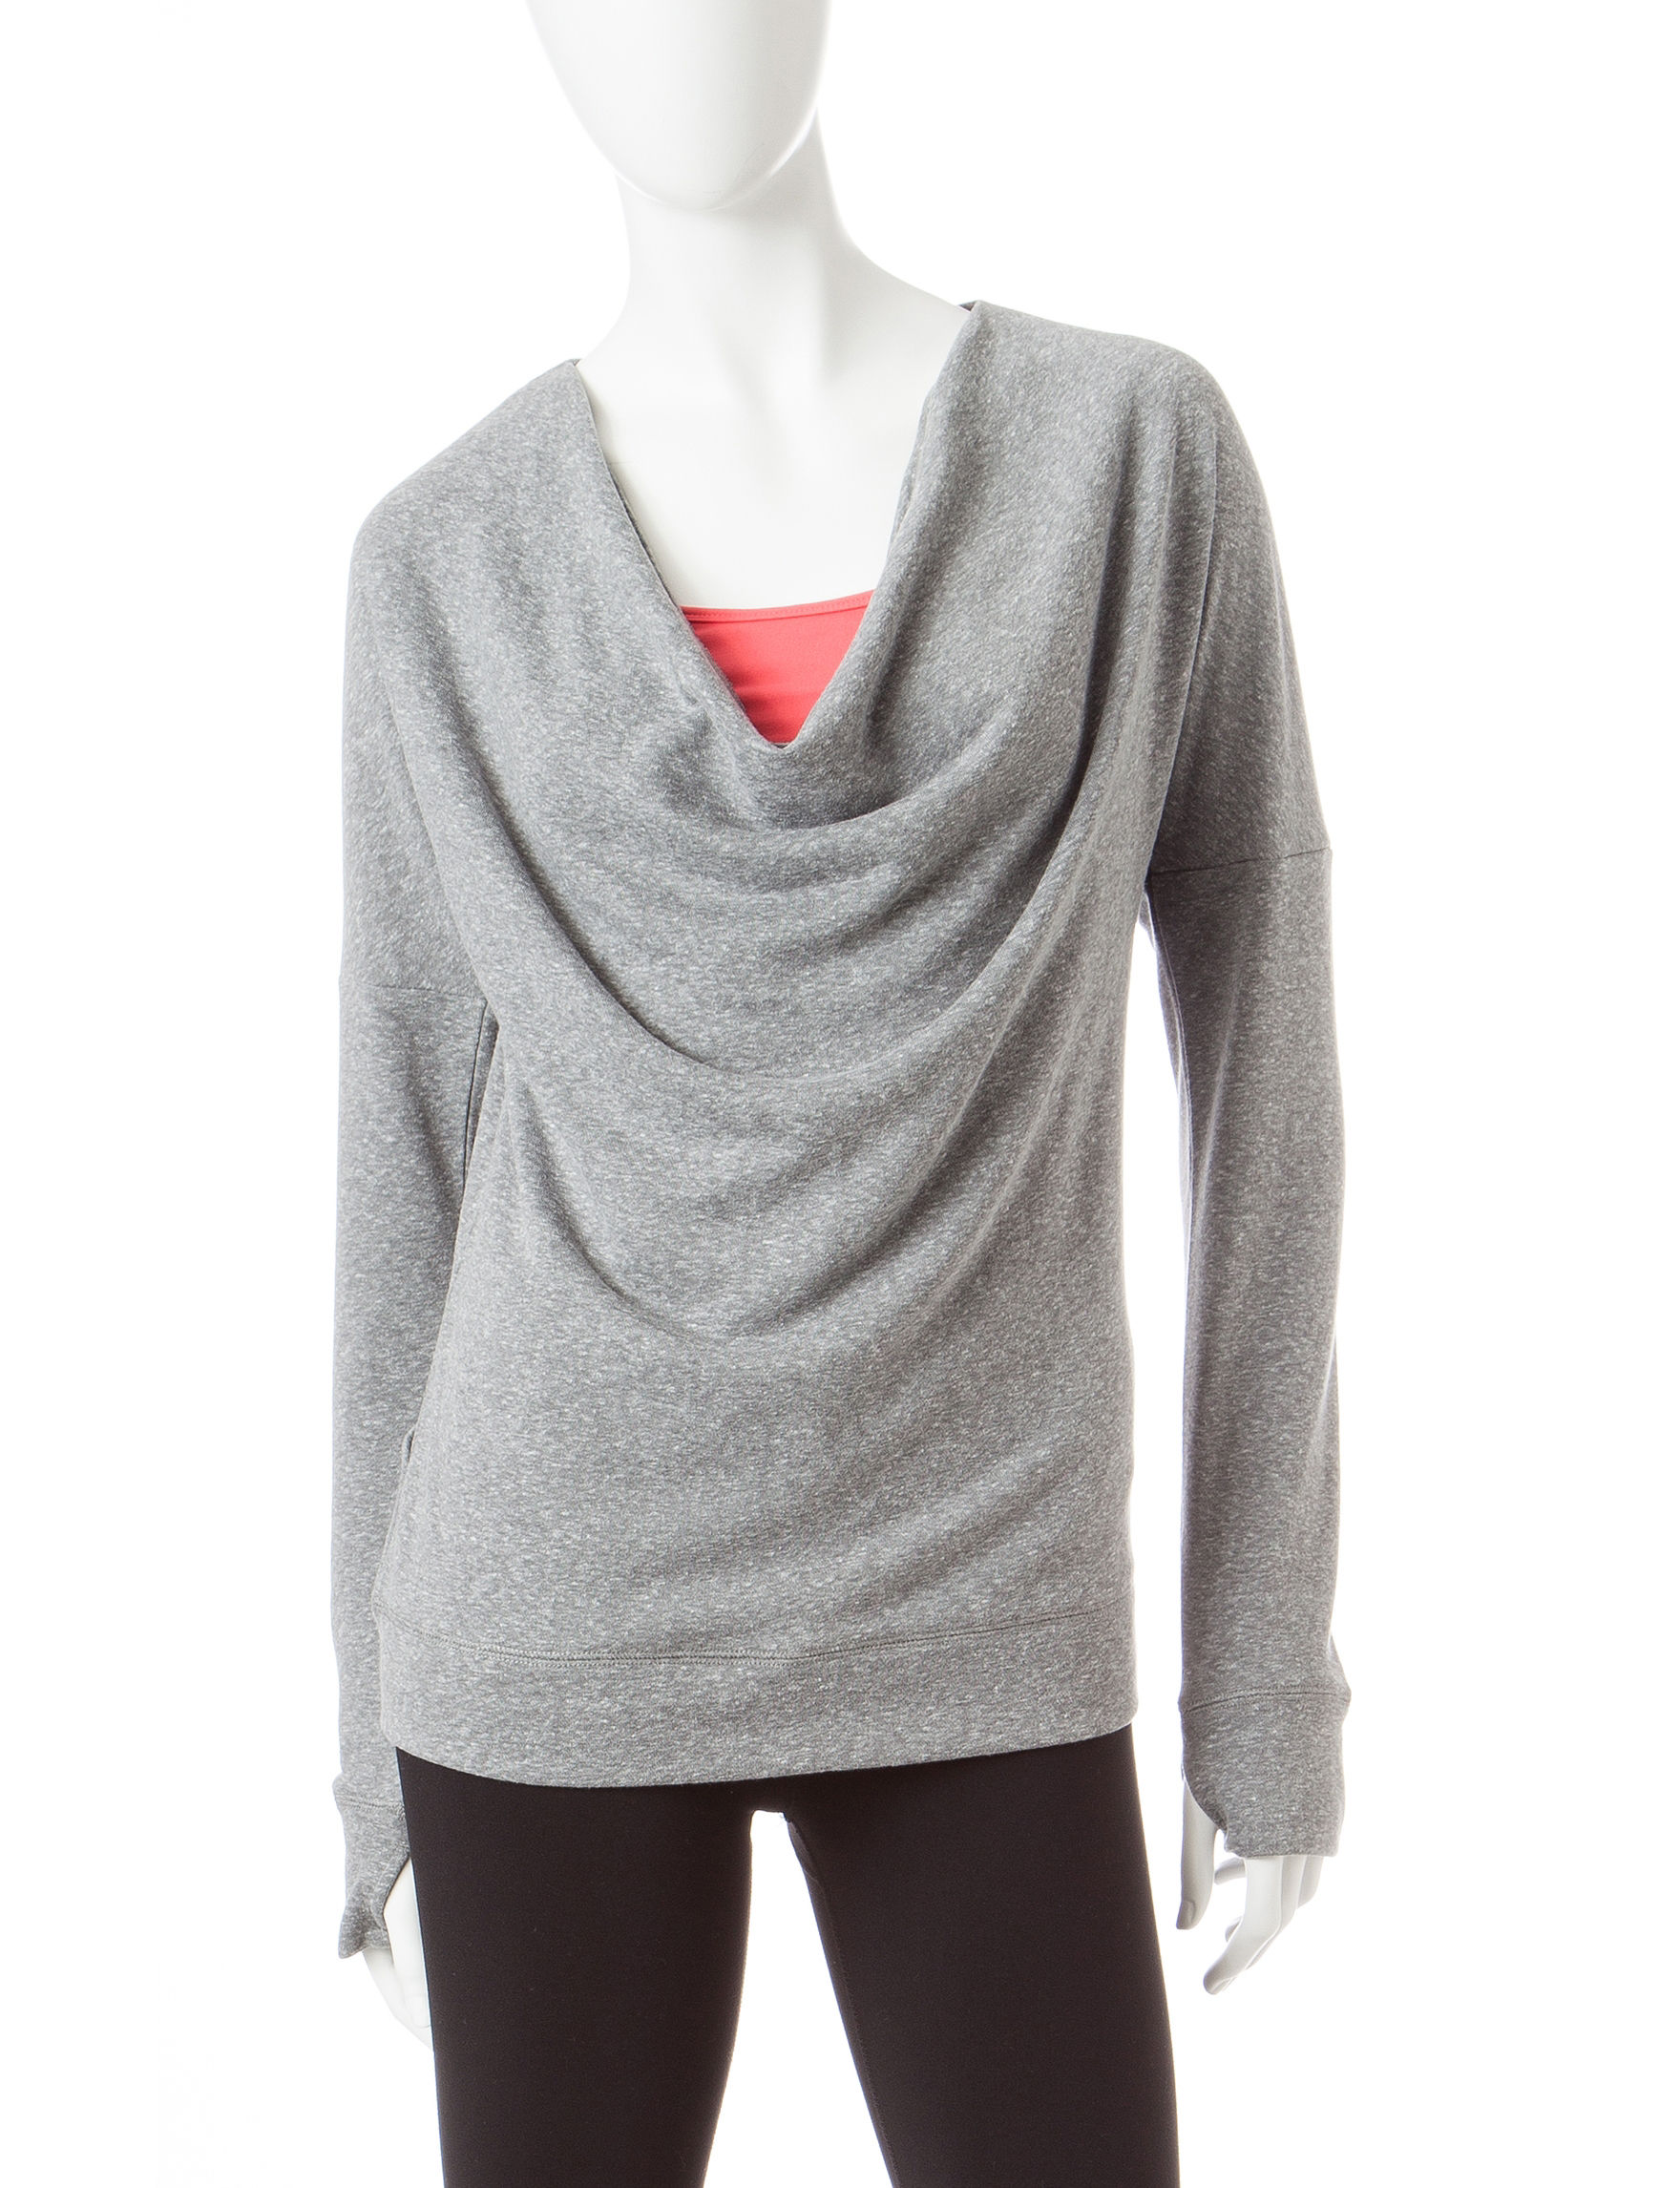 Steve Madden Grey Tees & Tanks